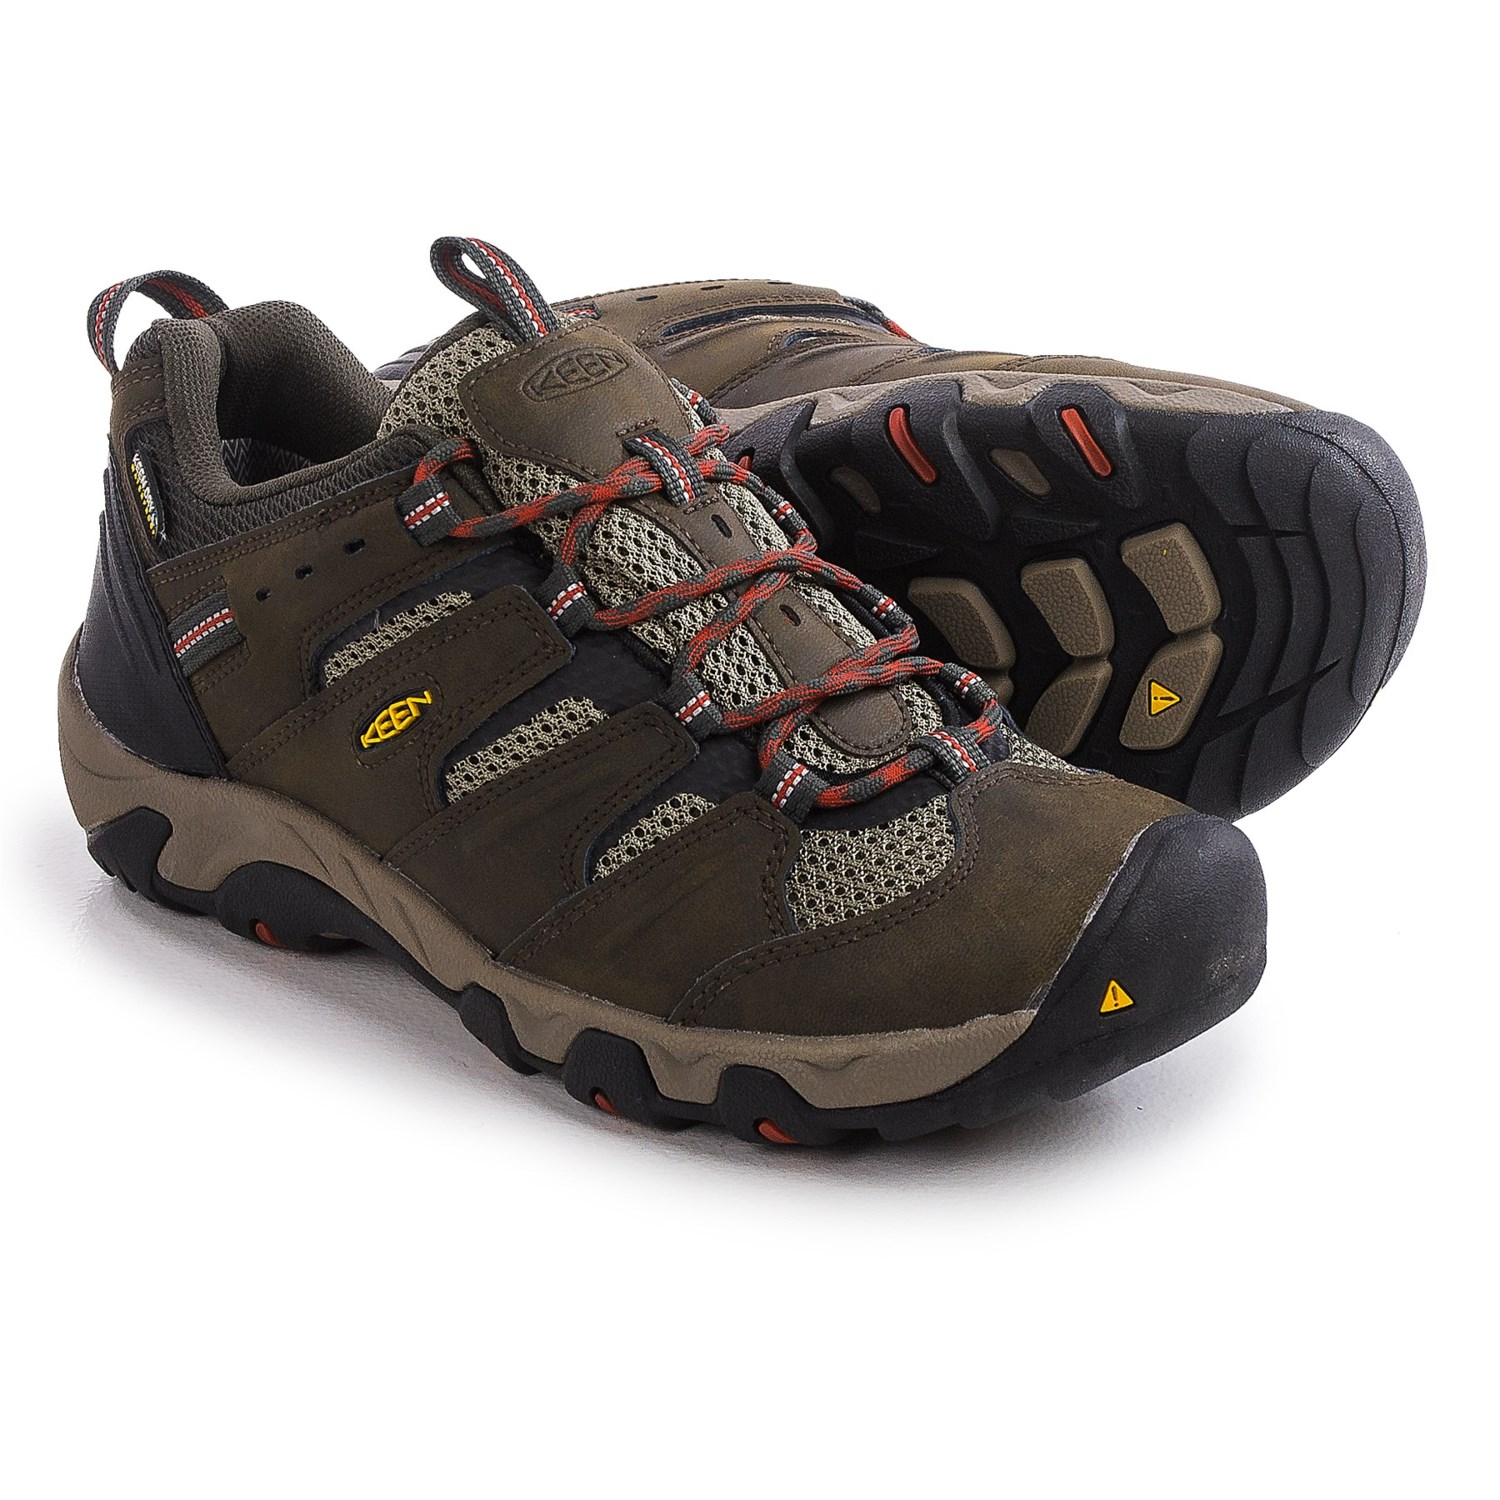 Keen Leather Shoes For Kids